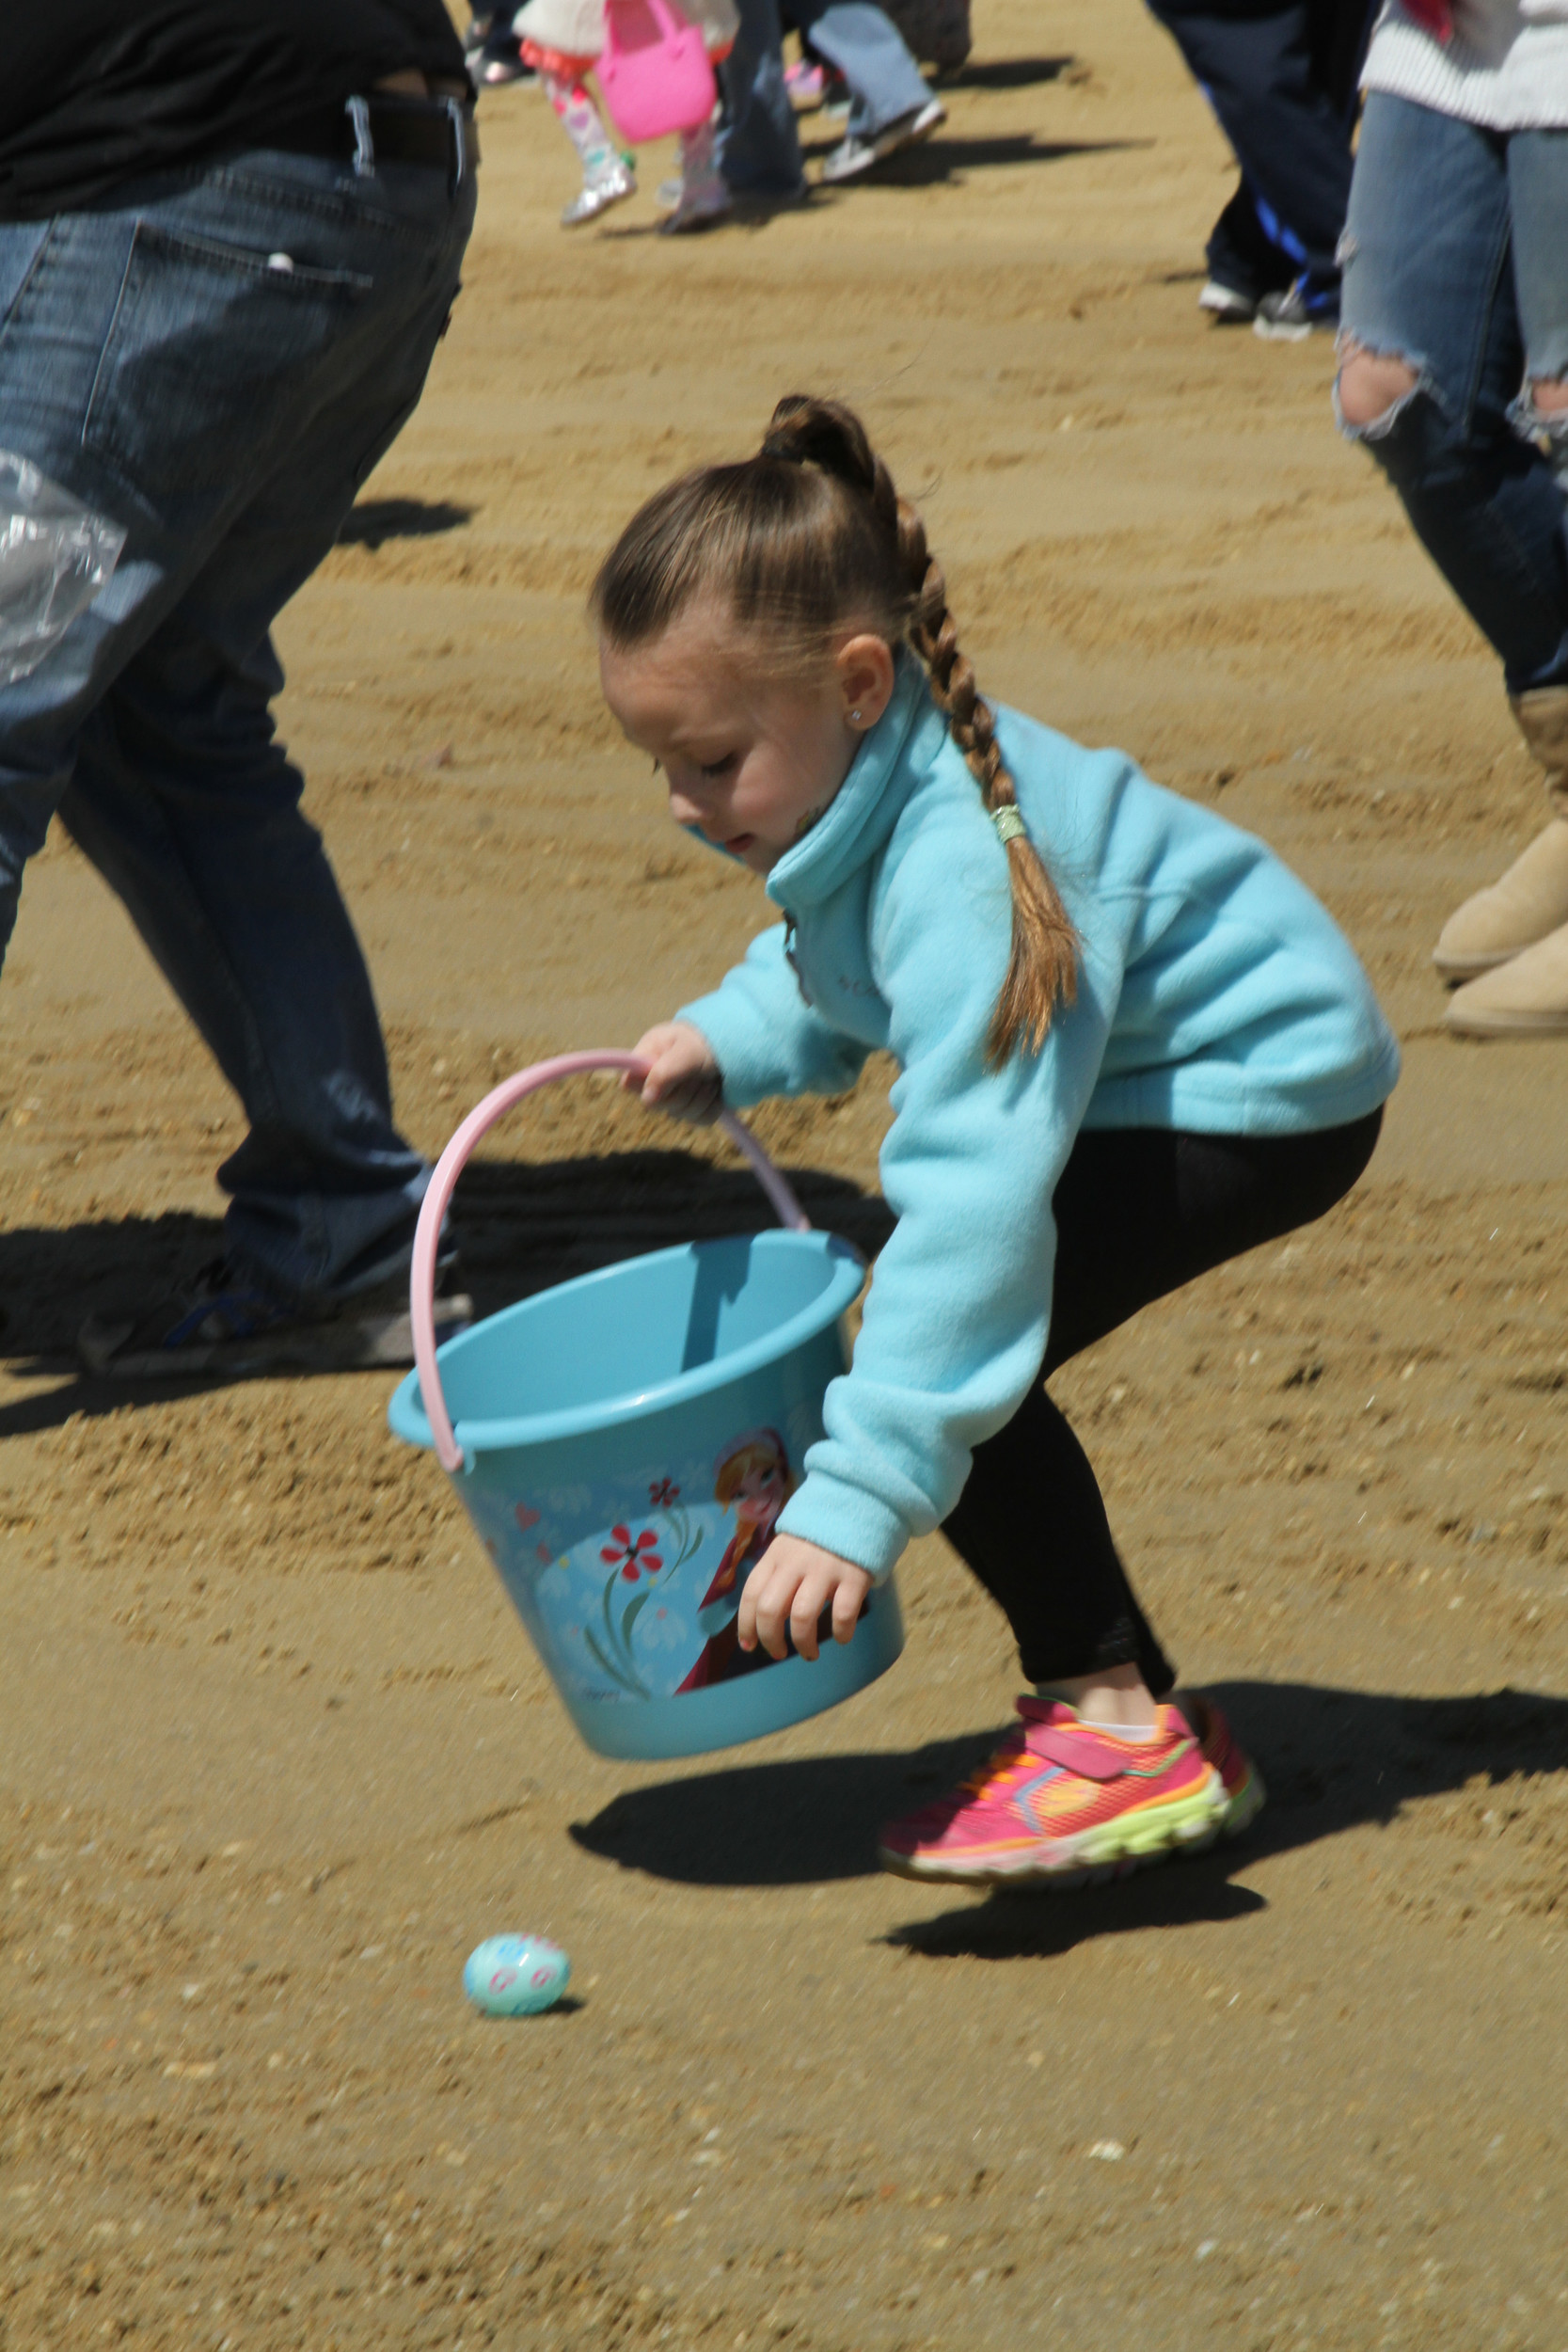 Once the parade was over, the children began hunting eggs on the beach.